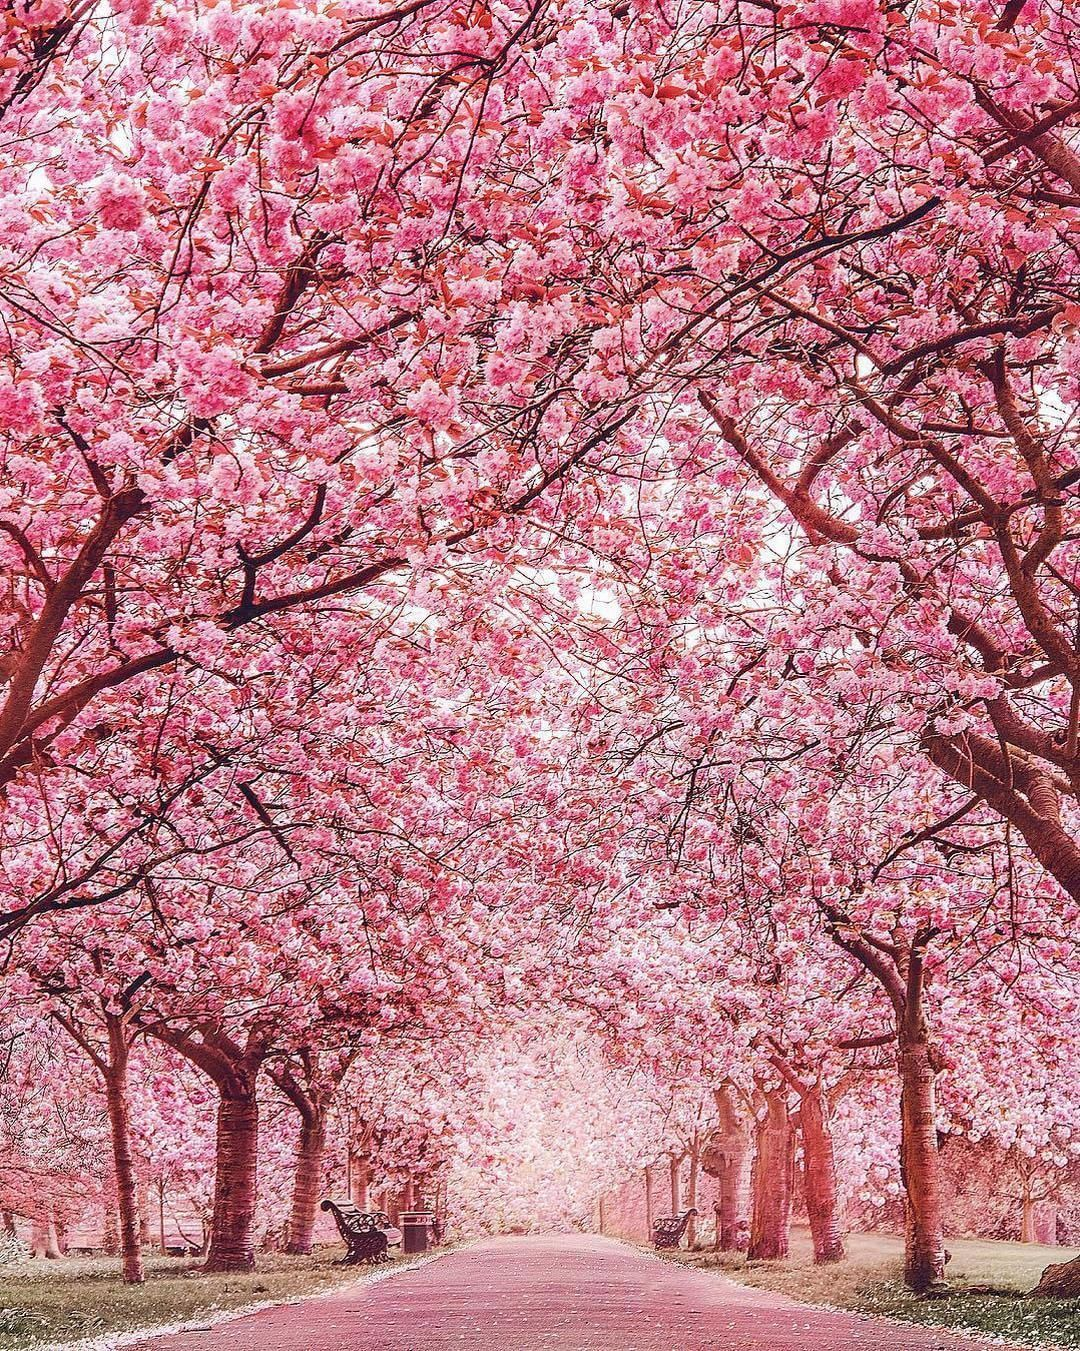 A World Full Of Cherry Blossoms